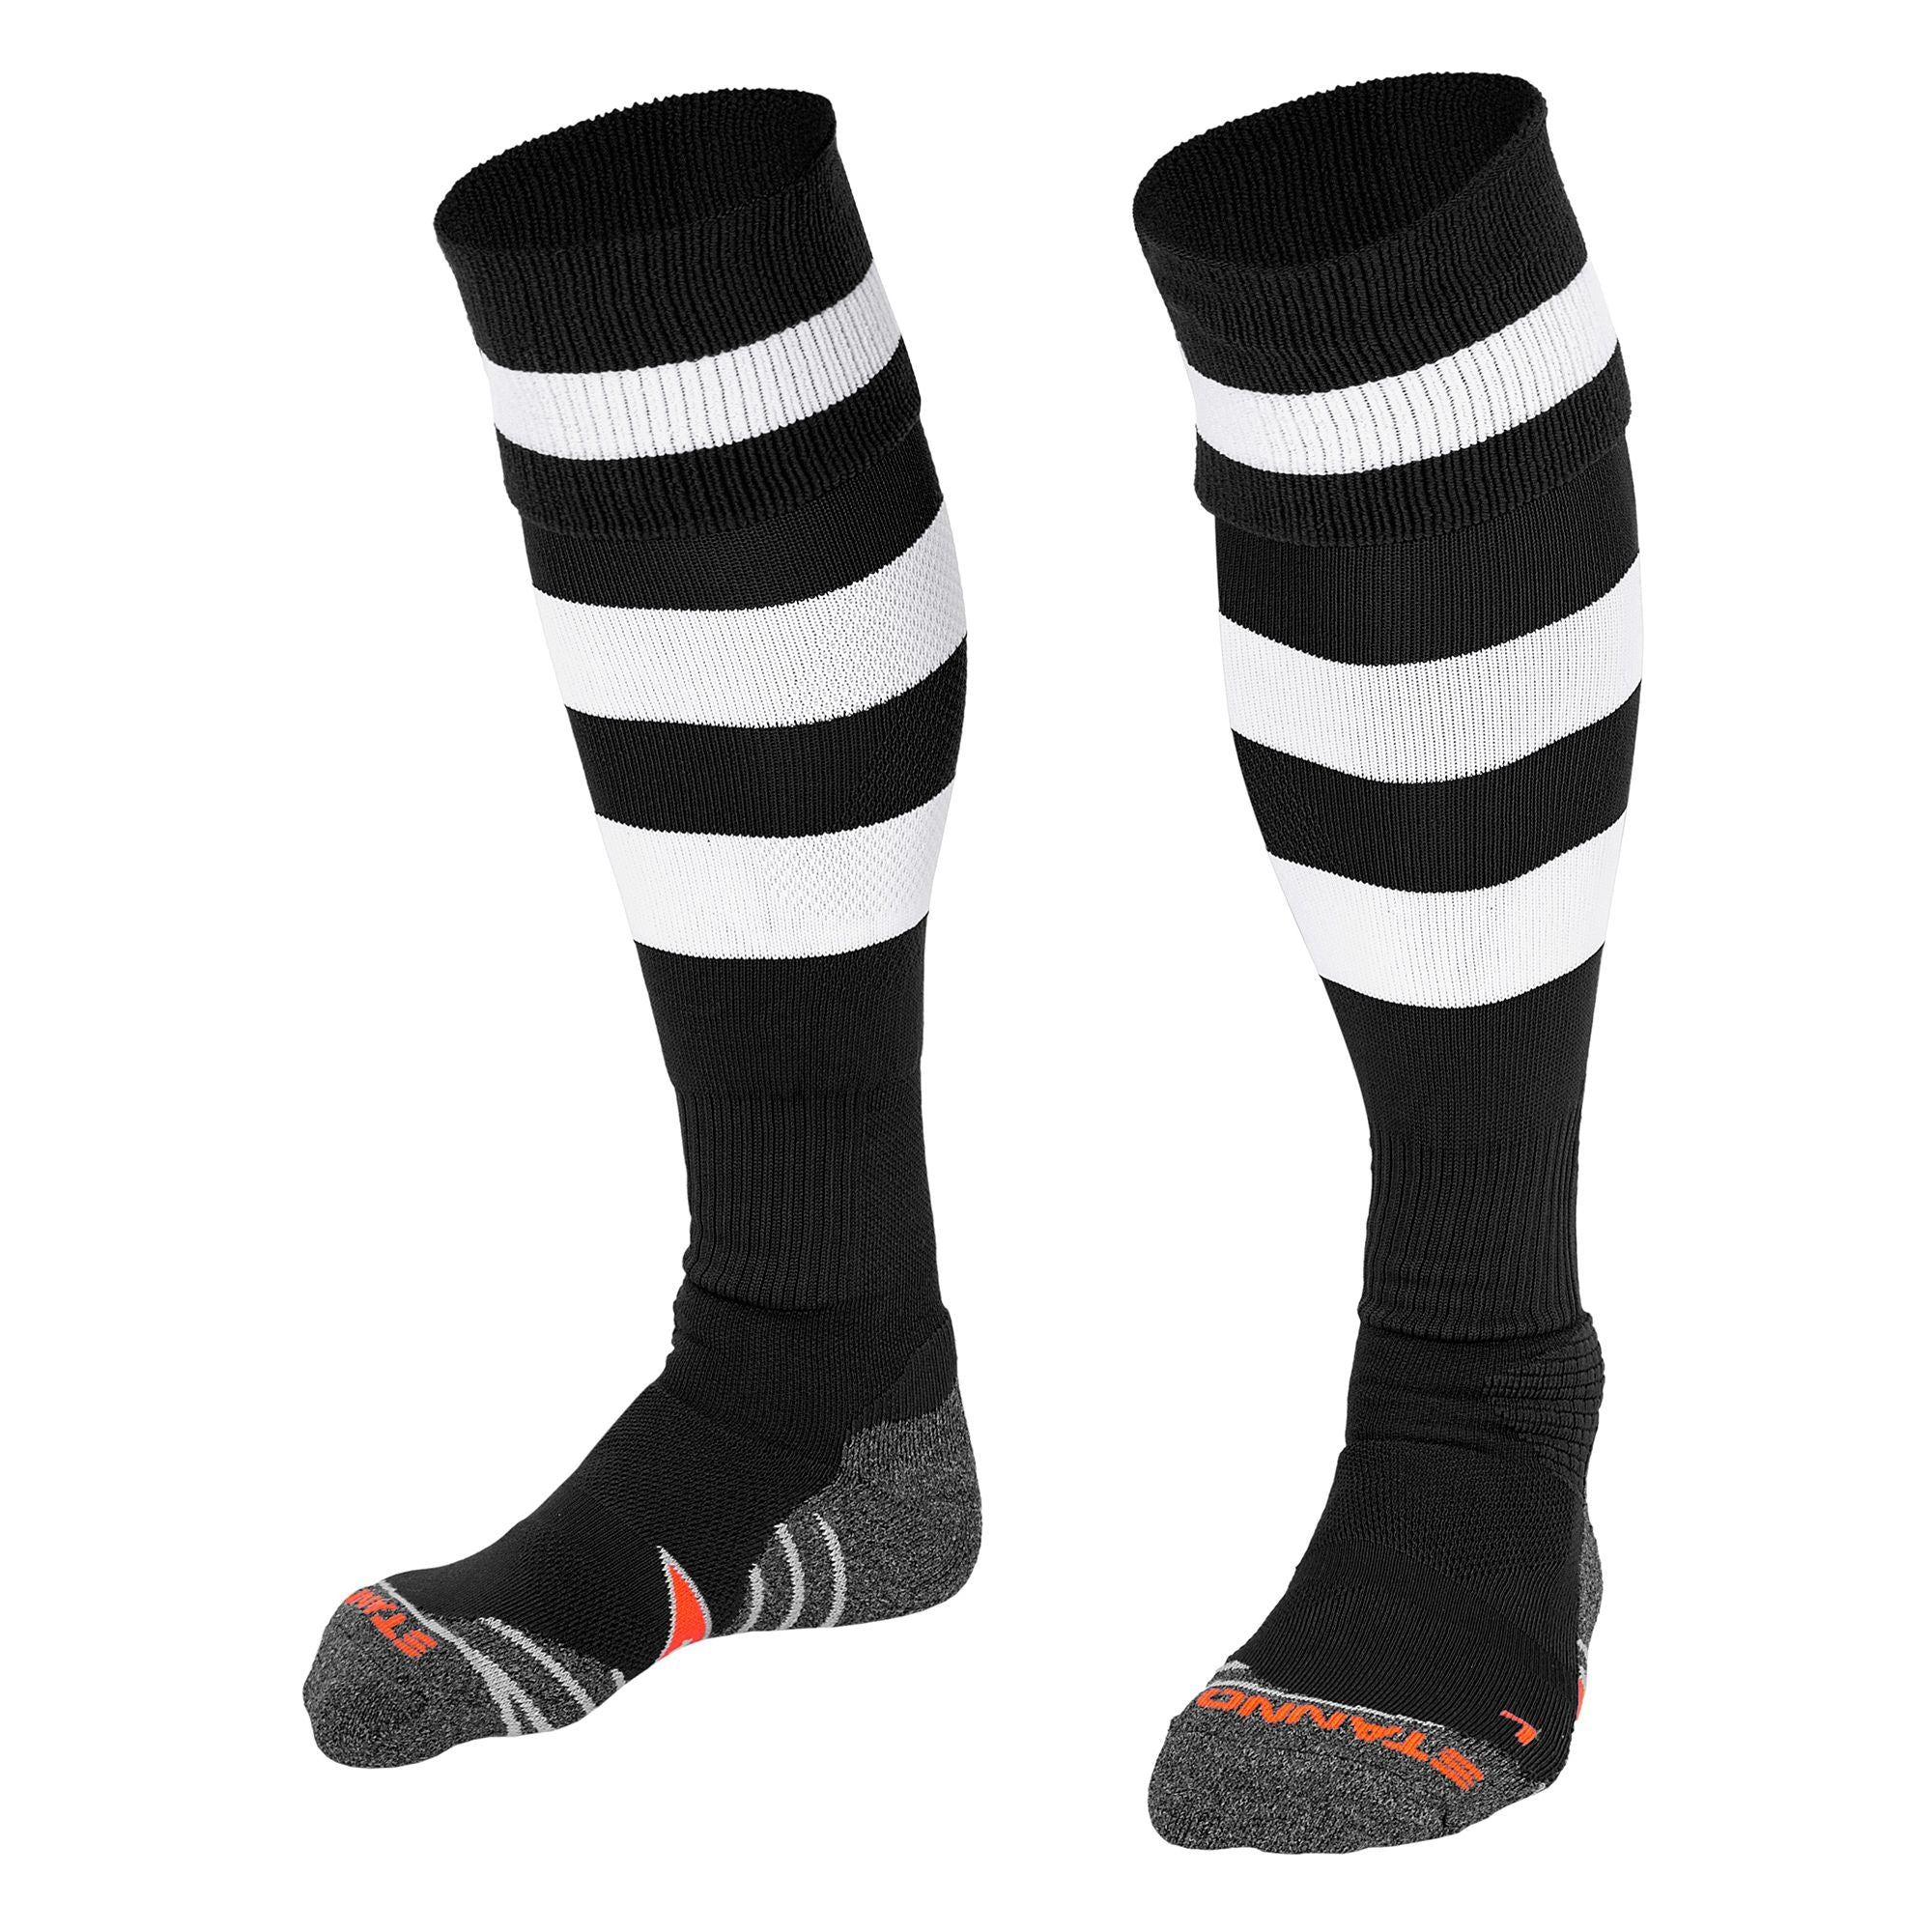 Stanno Original sock in black with 2 thick horizontal white stripes through the centre of the sock and one on the turnover. d